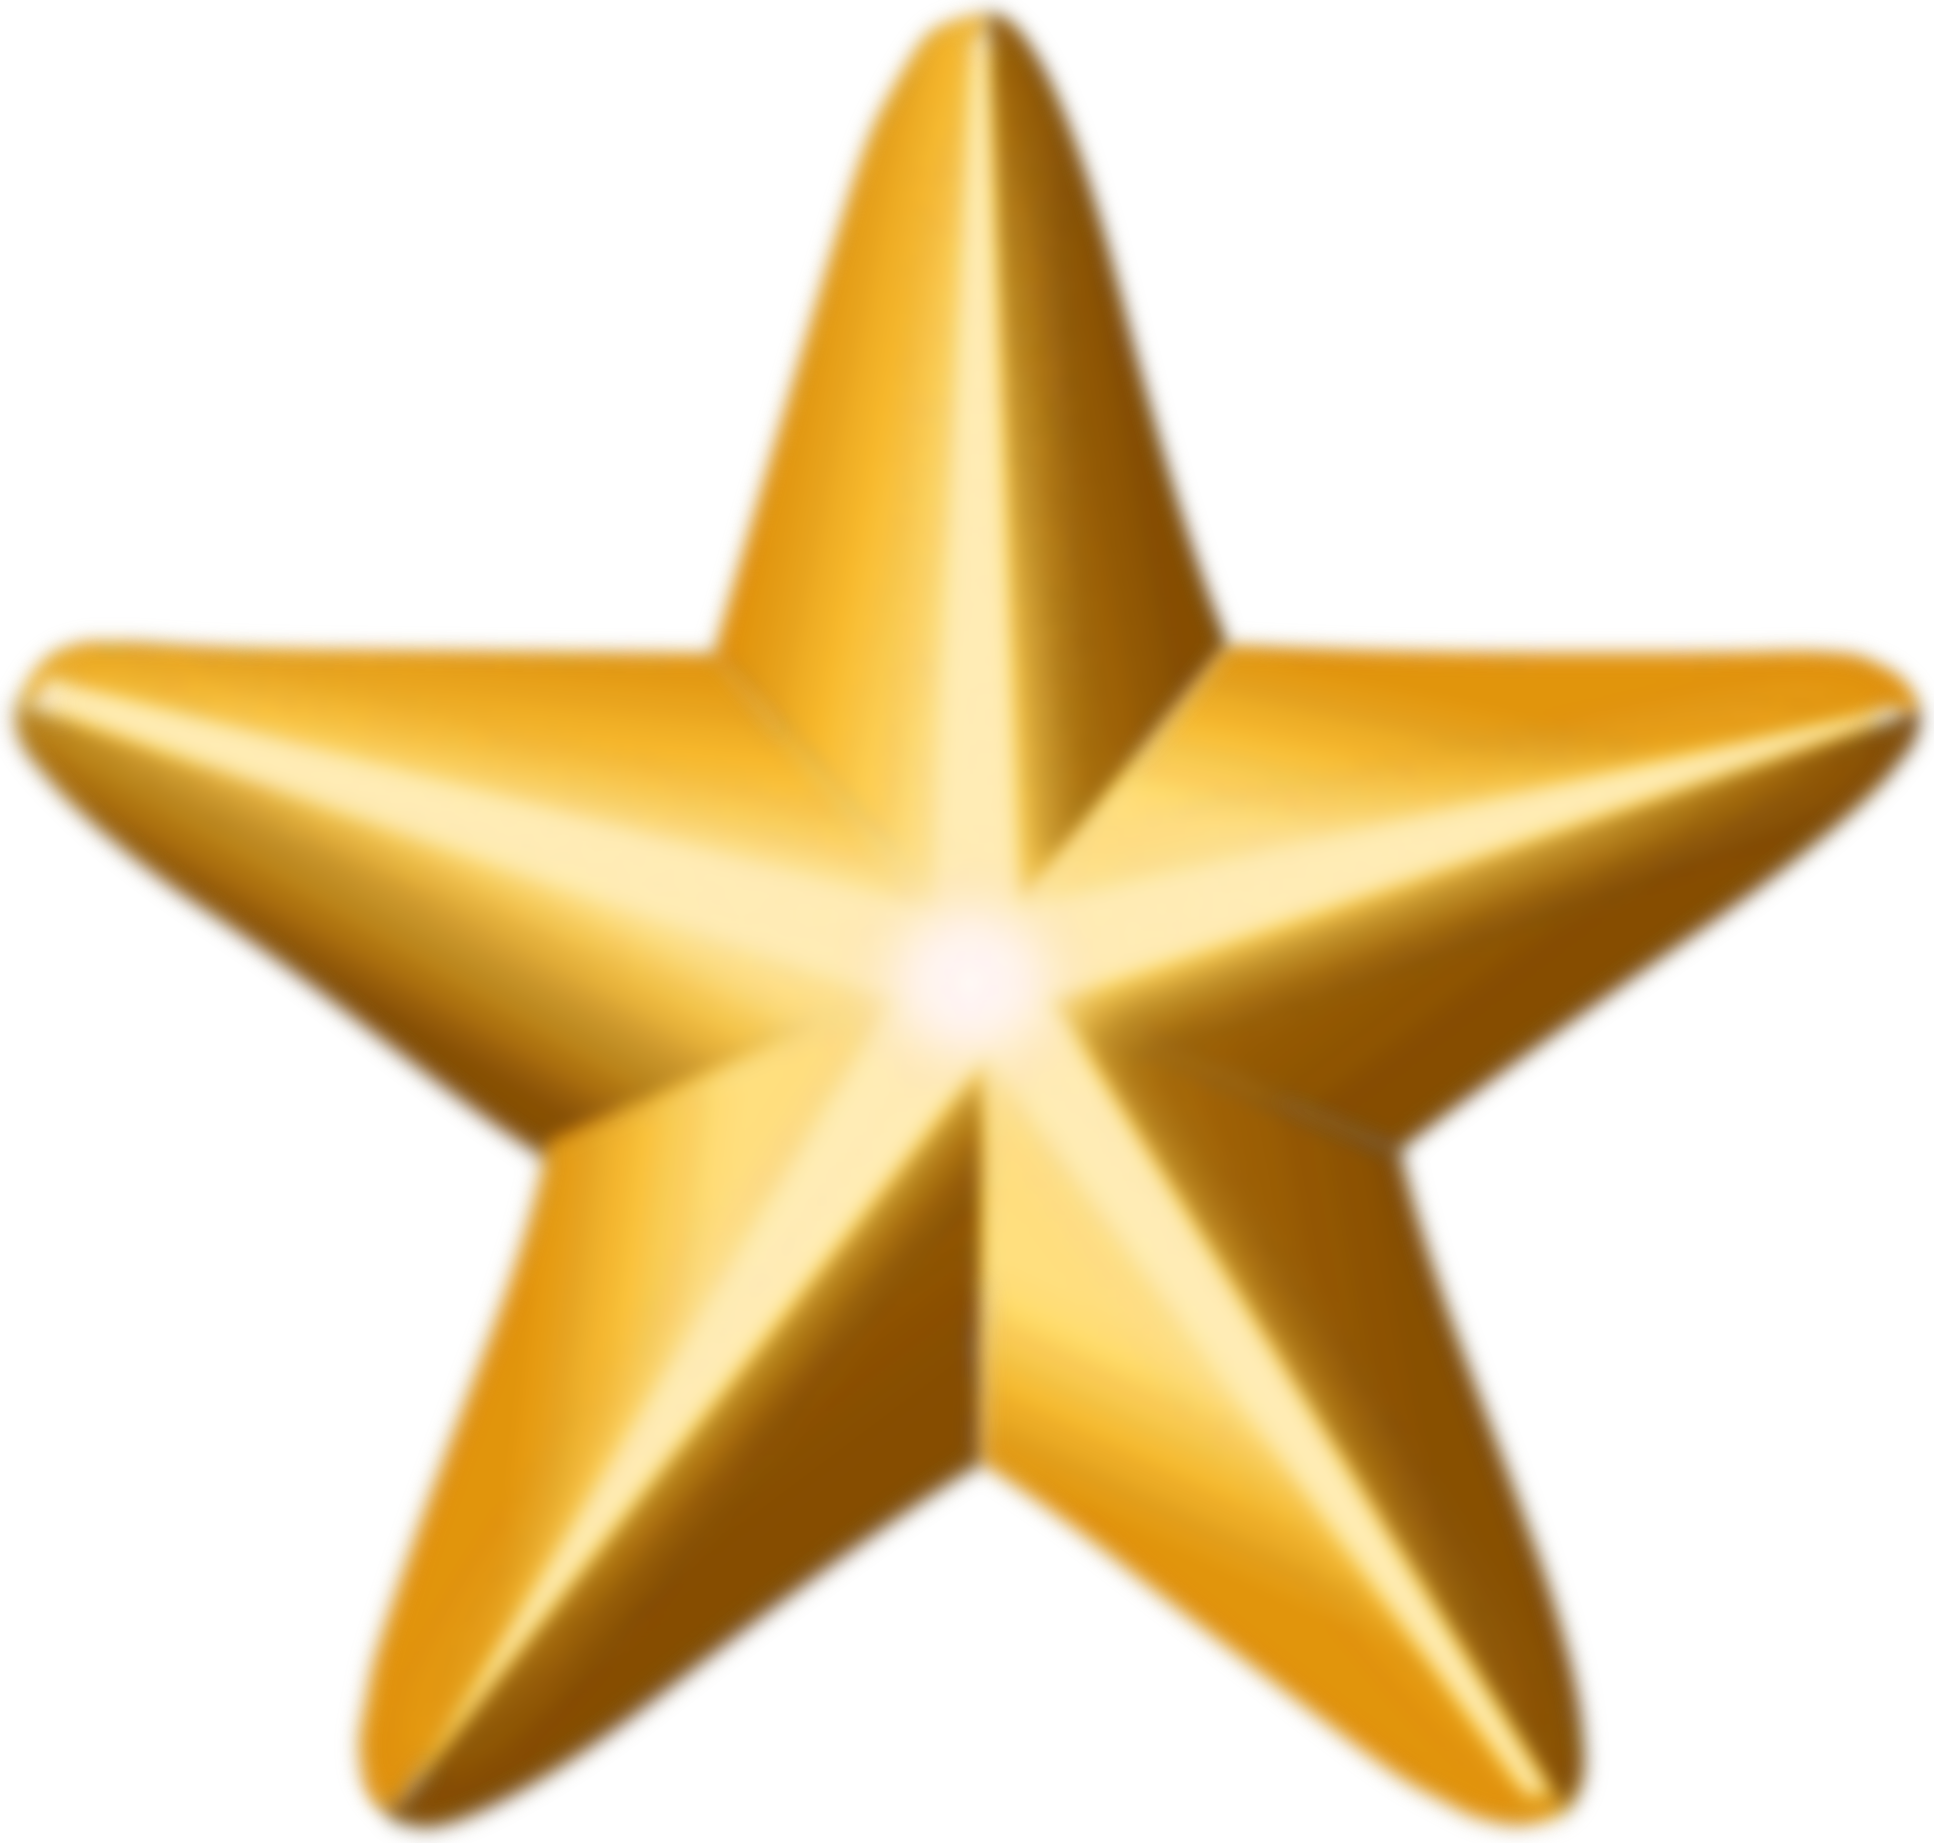 Star yellow clipart banner royalty free library Gold Star Image Group (41+) banner royalty free library